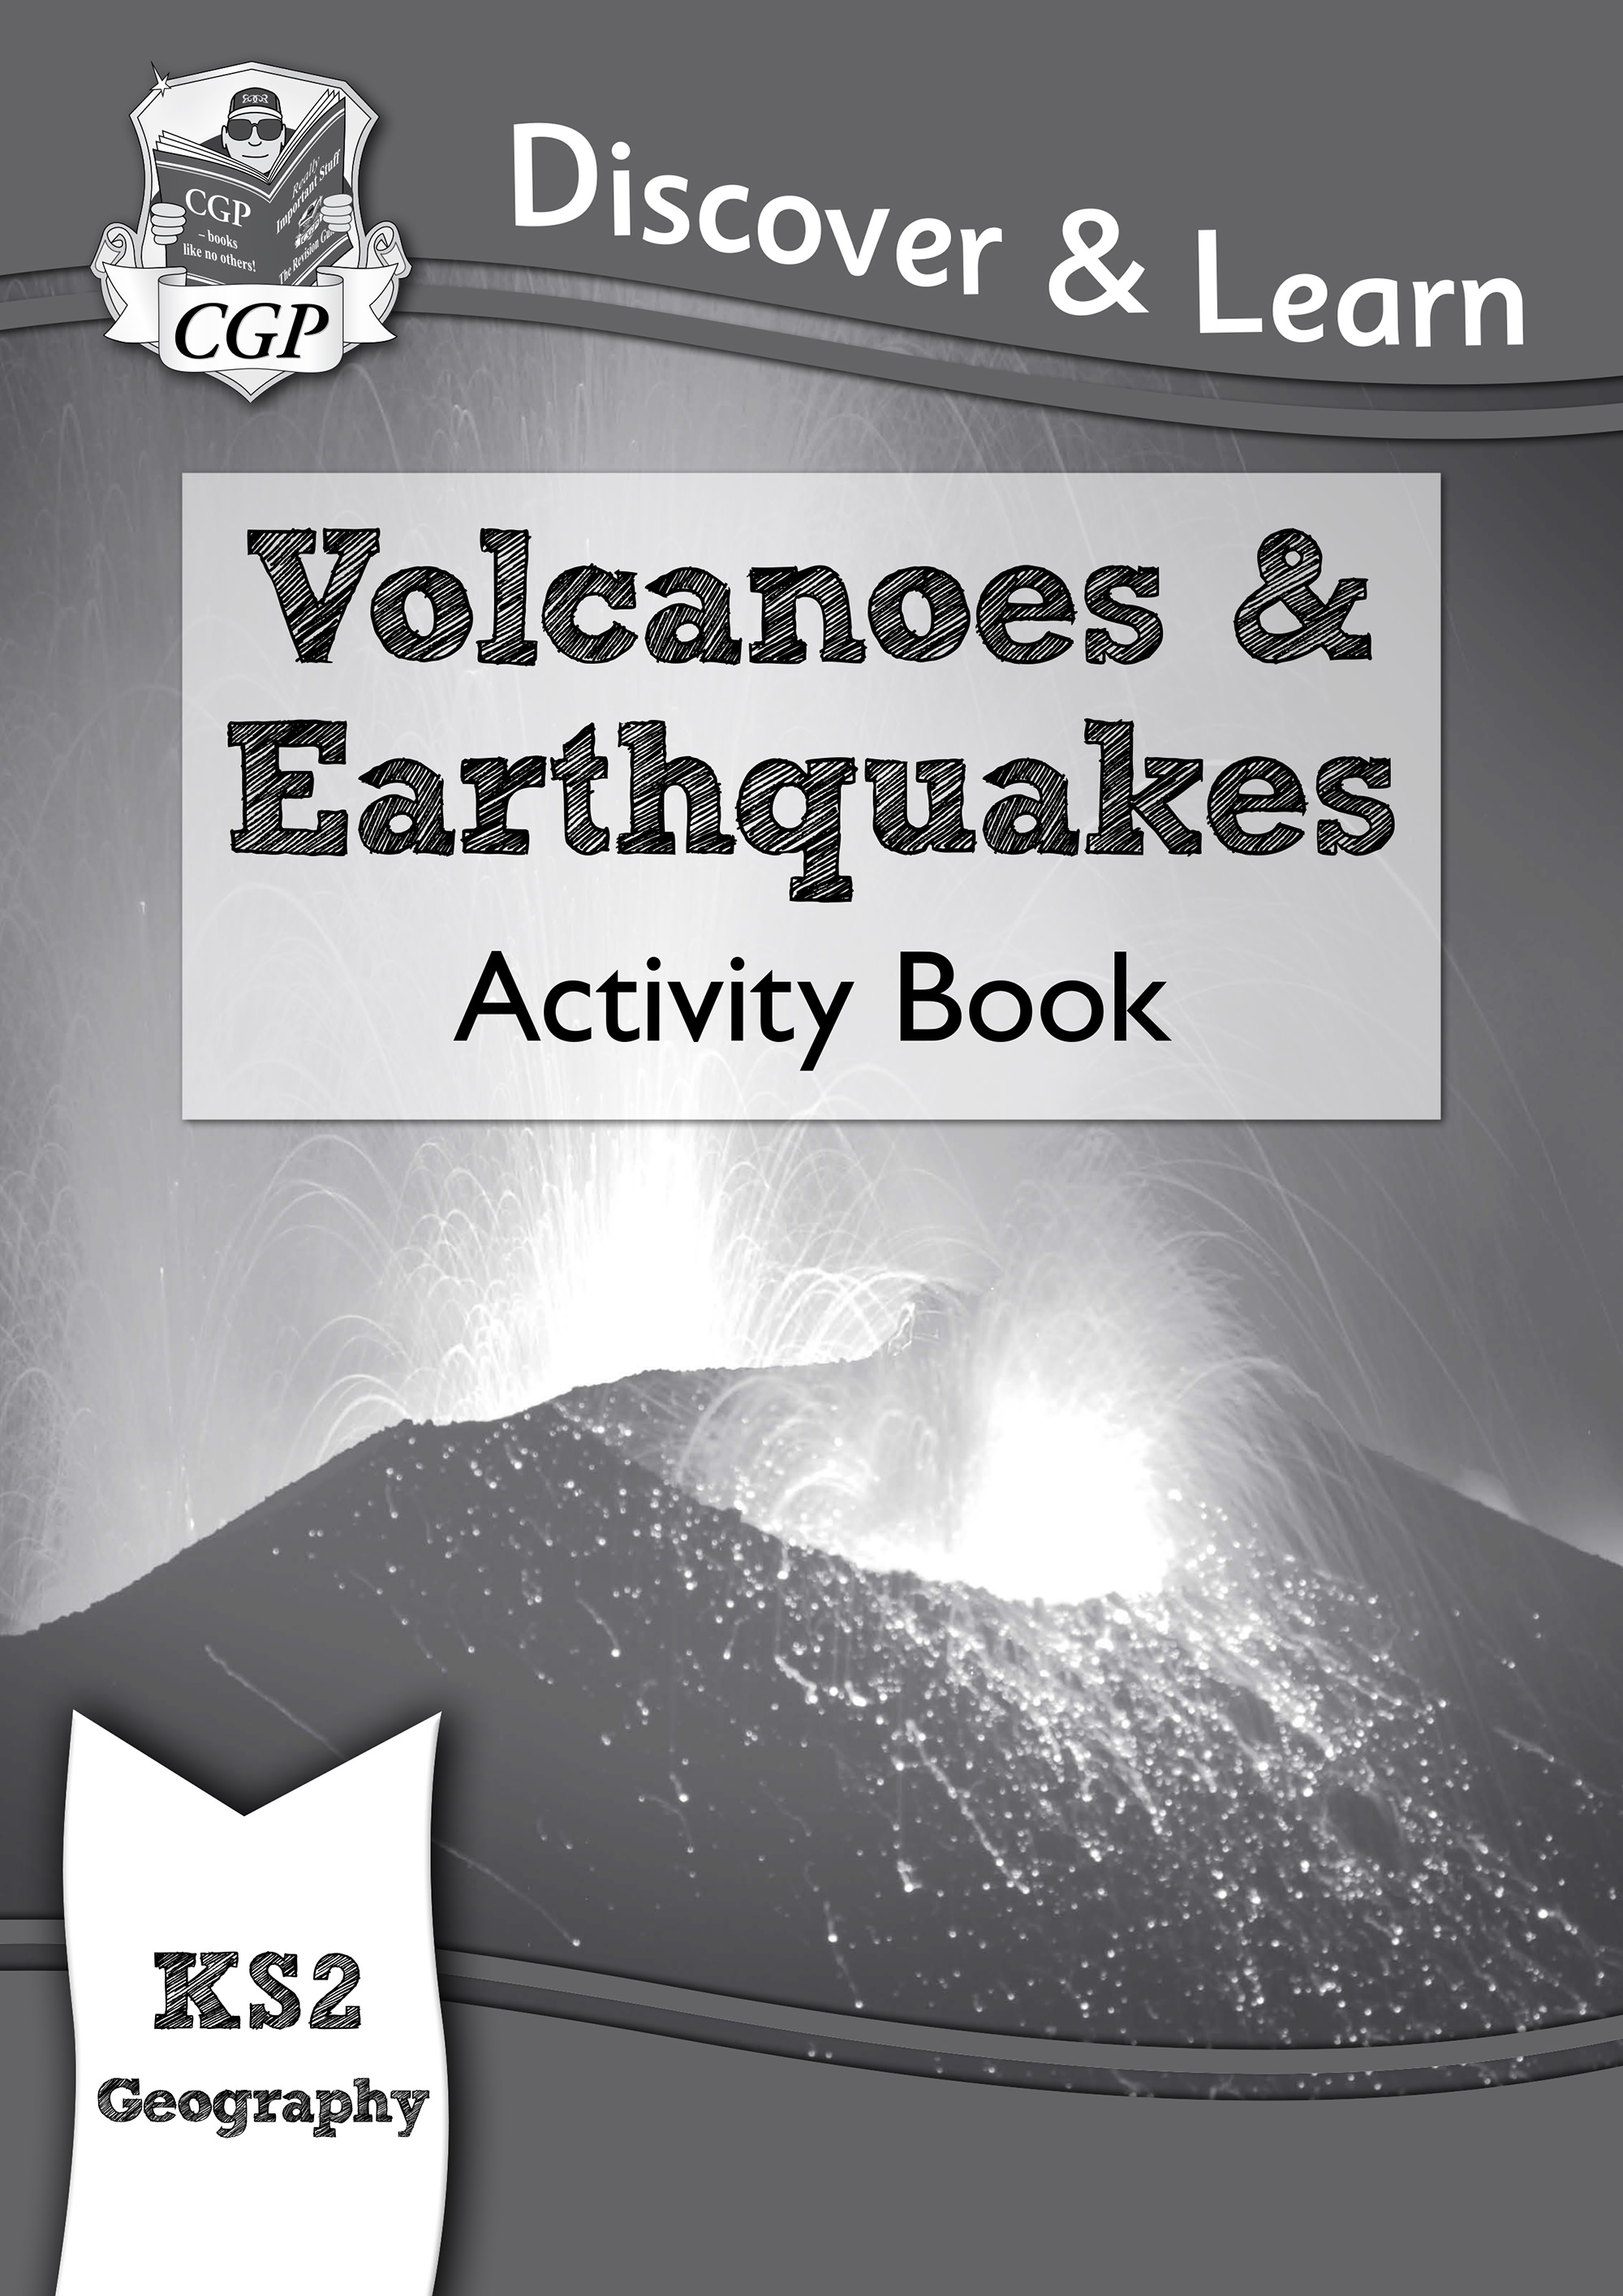 GVW21D - KS2 Discover & Learn: Geography - Volcanoes and Earthquakes Activity Book Online Edition